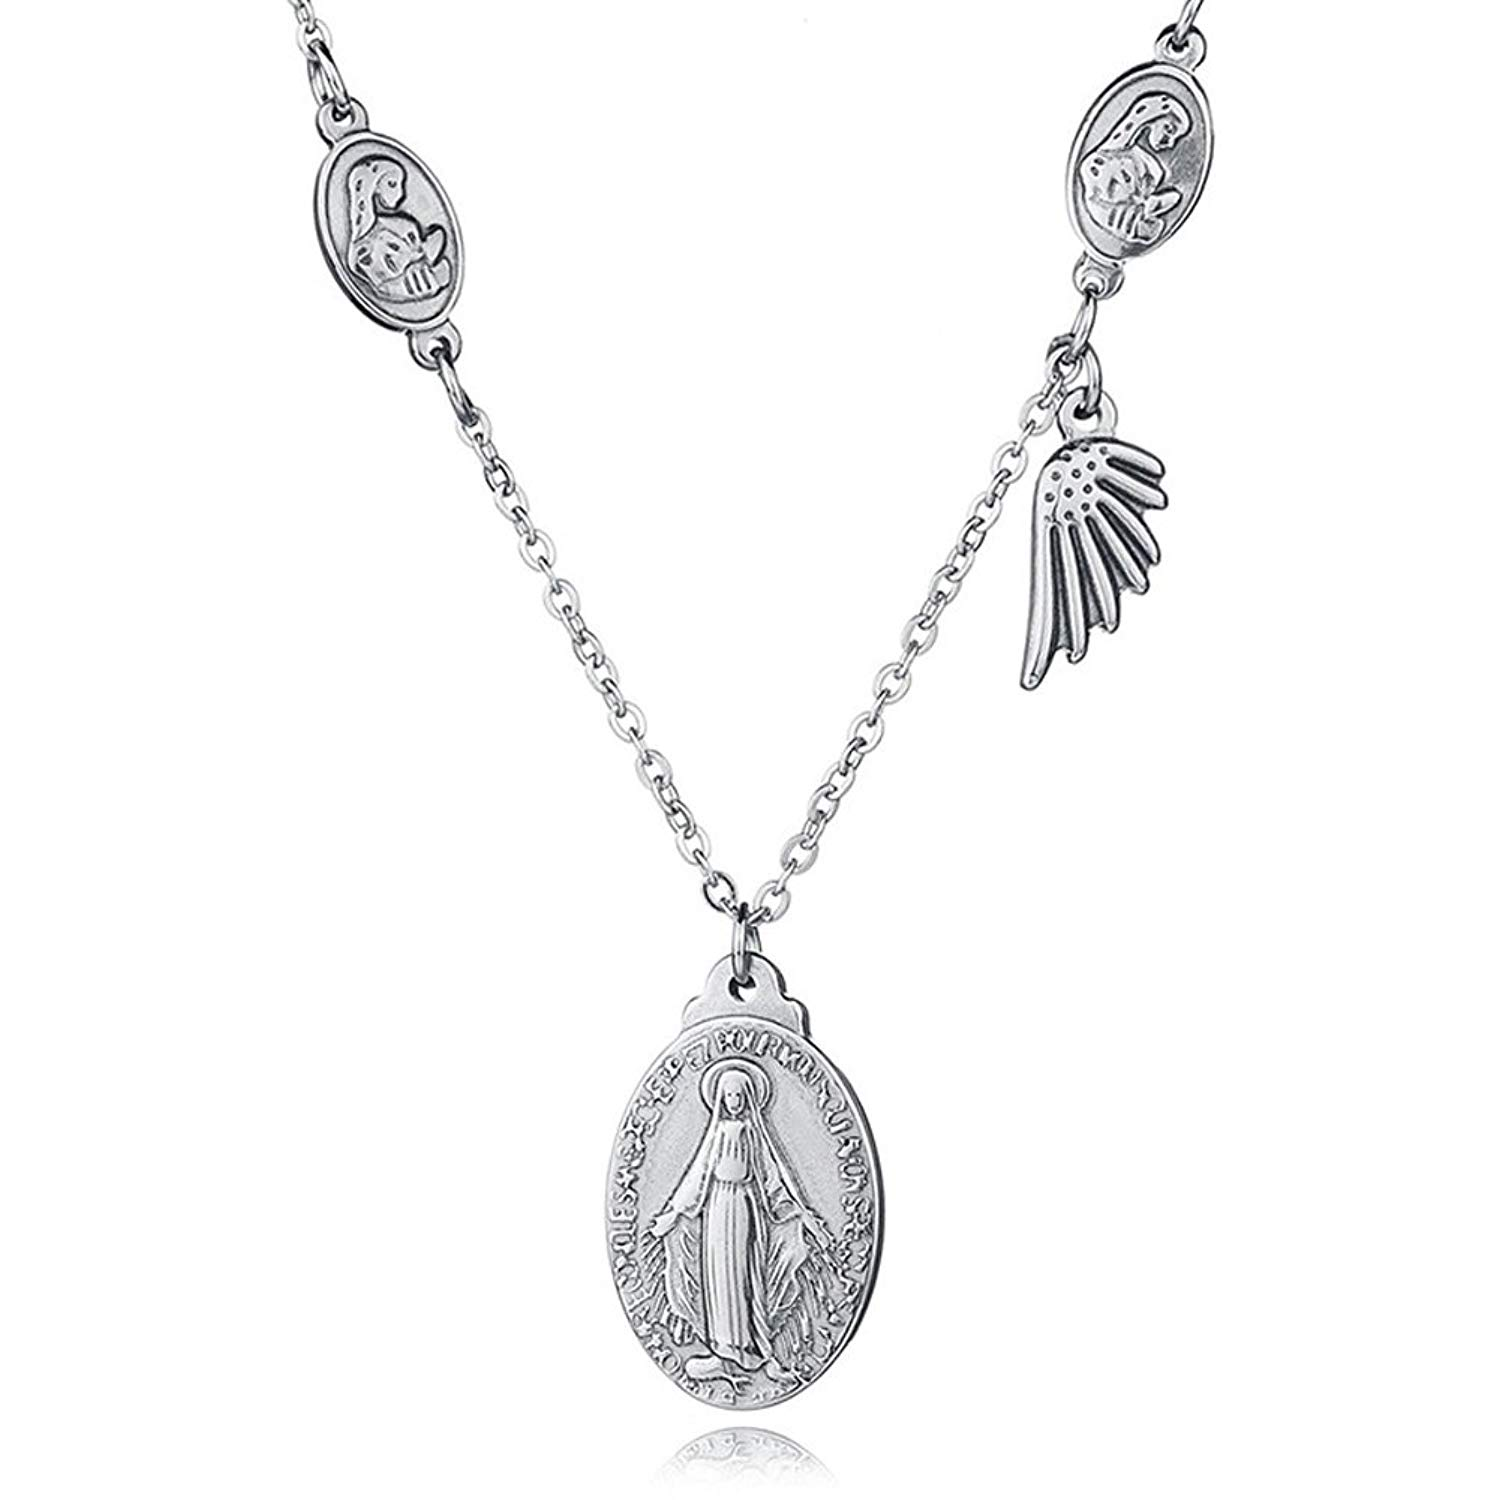 Cheap Miraculous Medal Necklace Find Miraculous Medal Necklace